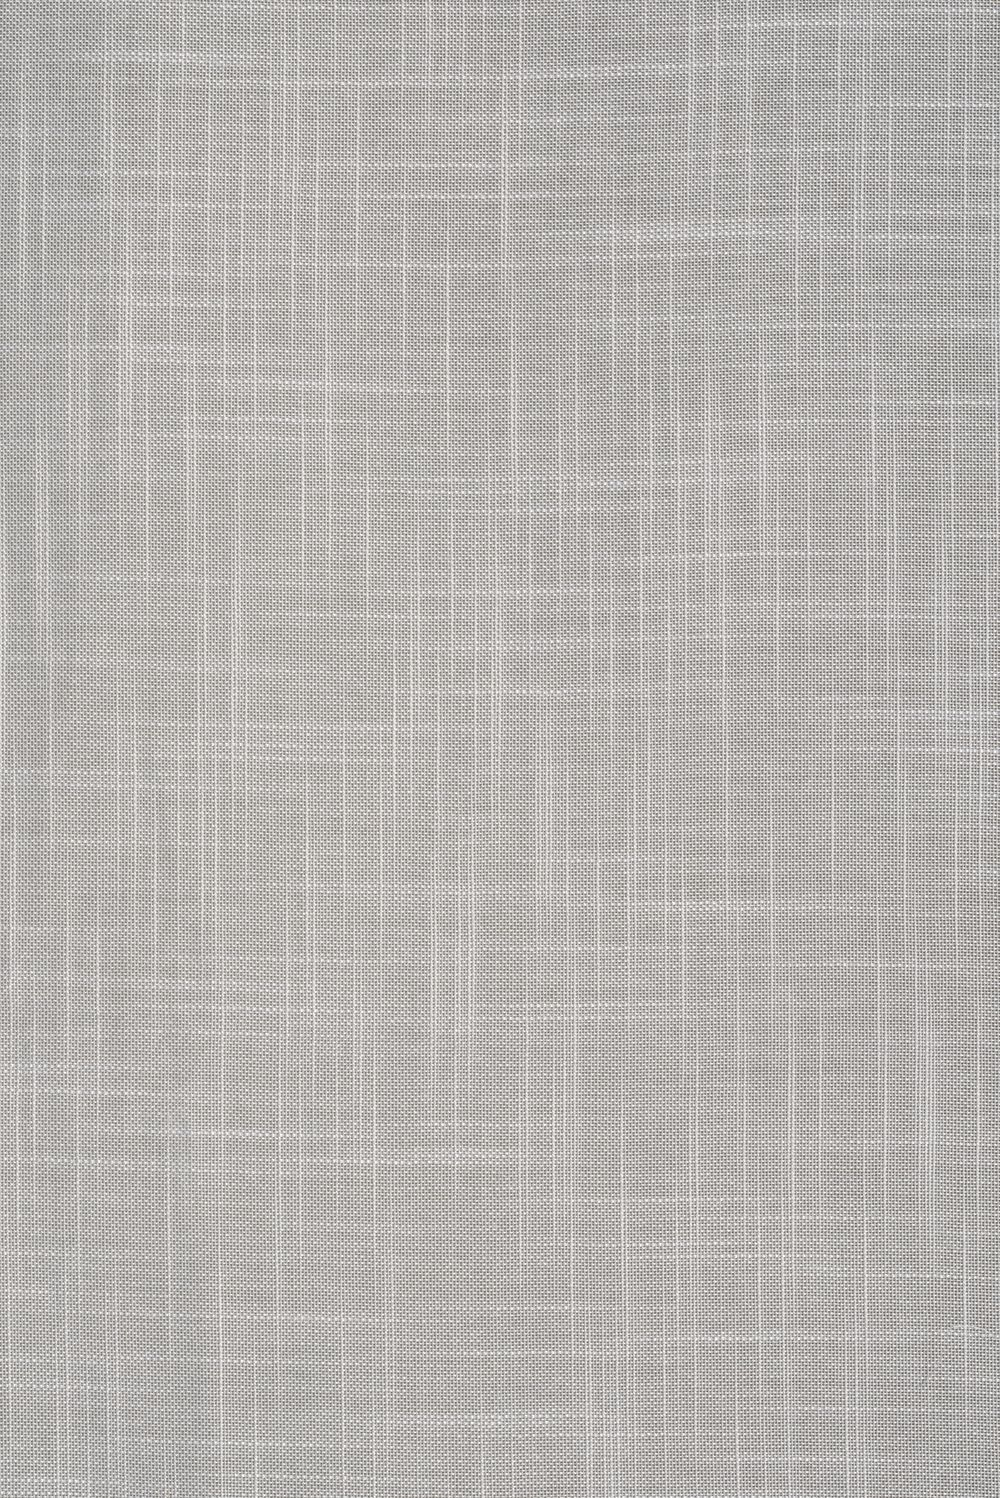 Photo of the fabric Attica Ash swatch by Zepel. Use for Curtains. Style of Plain, Sheer, Texture